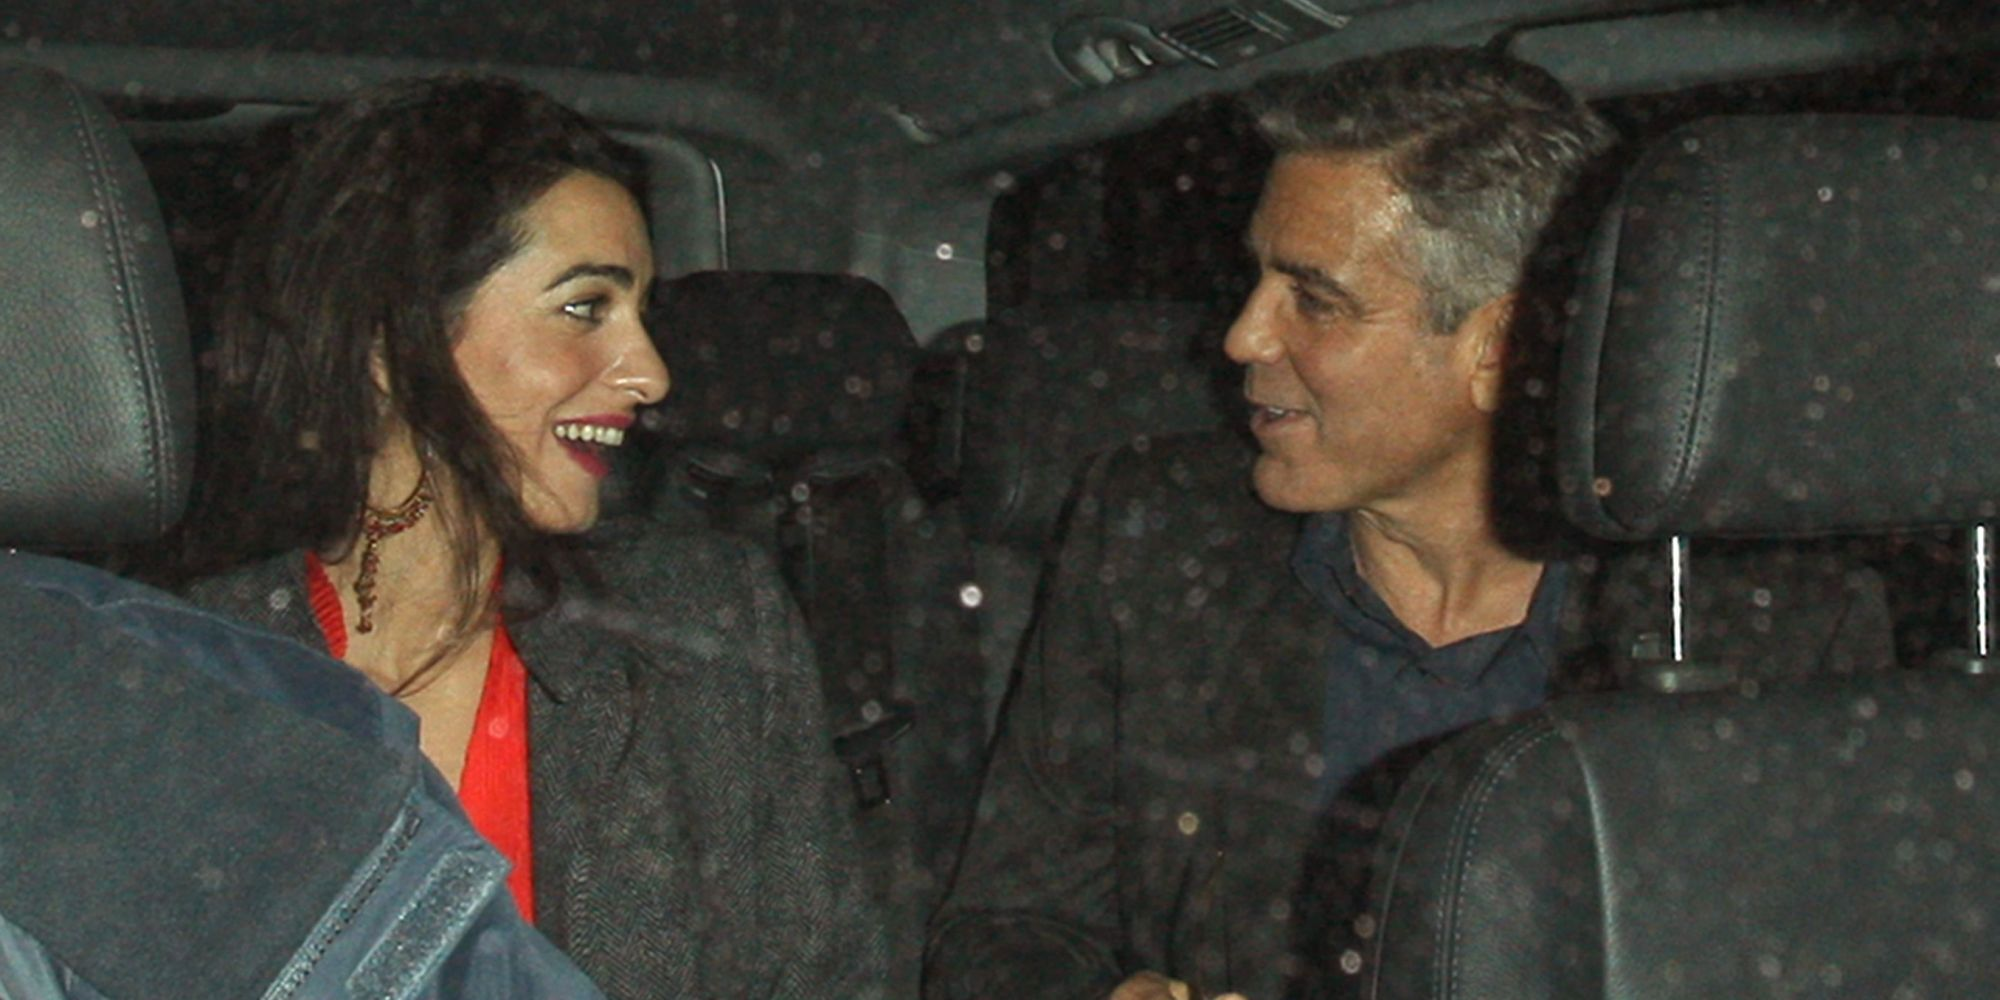 George clooney fiance age - photo#19